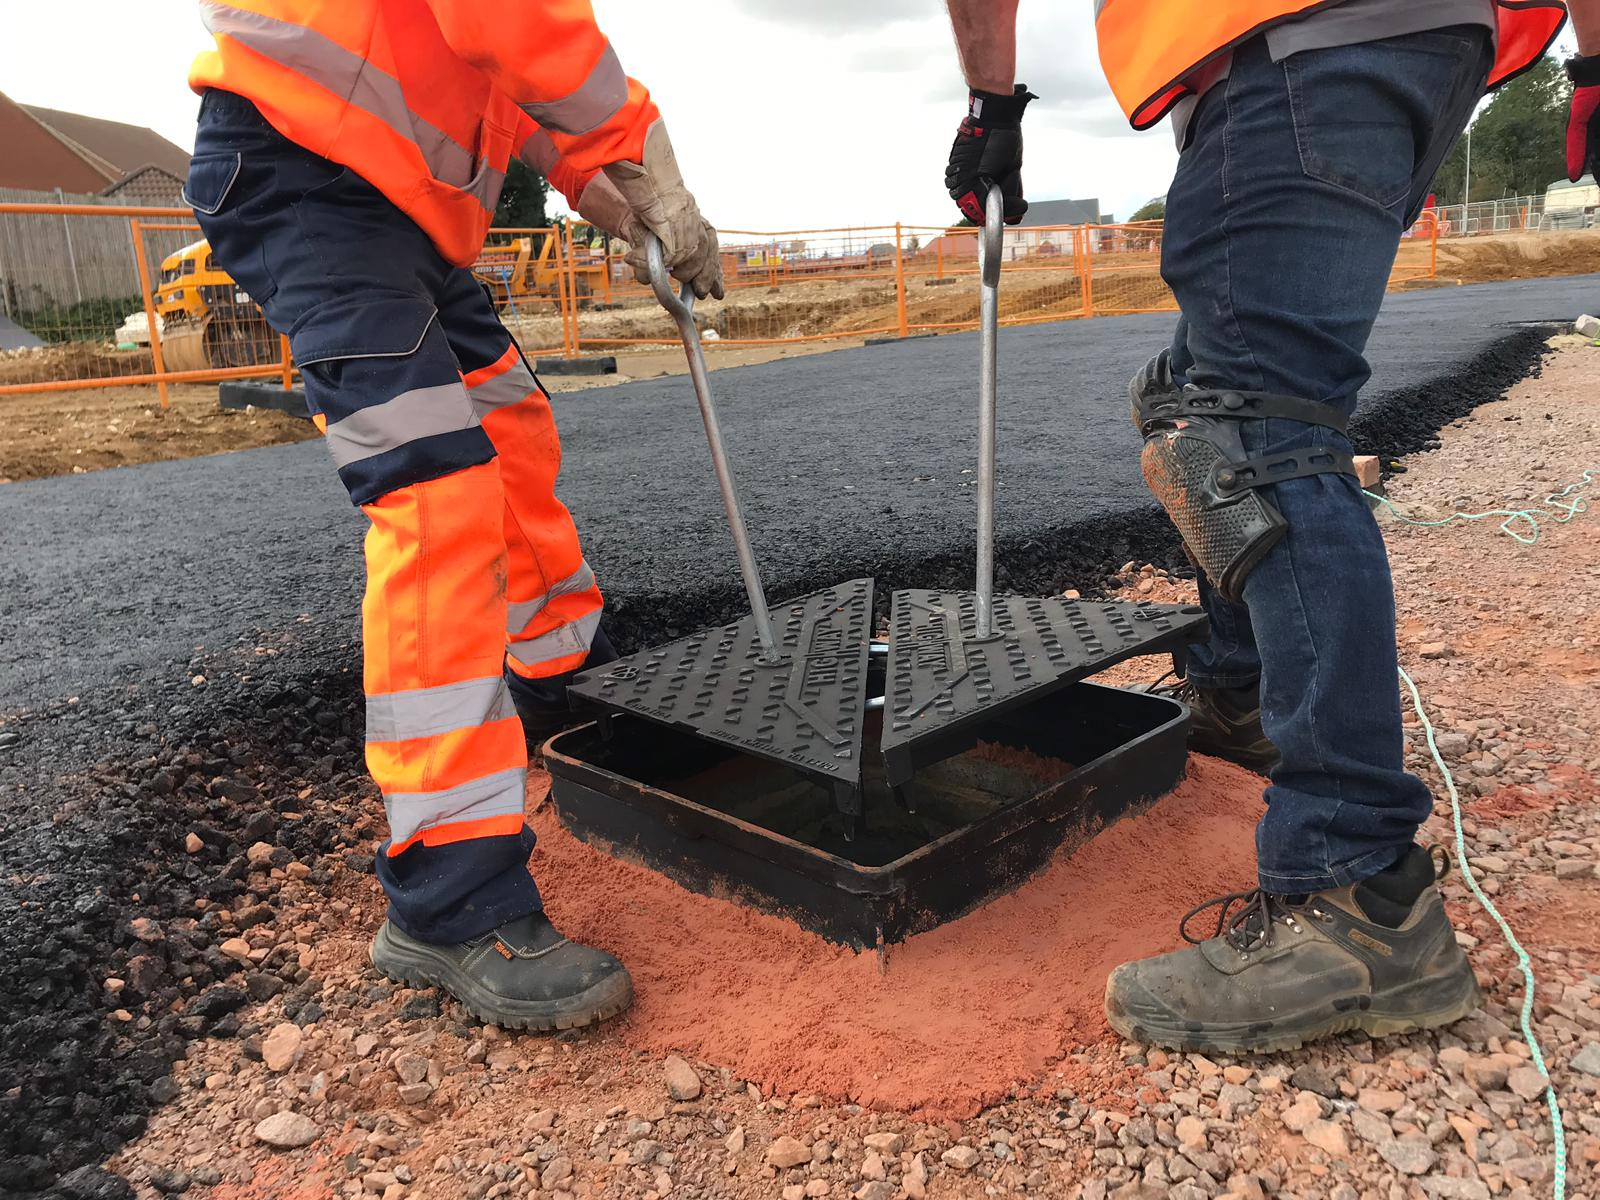 Wrekin goes above and beyond with new manhole cover solution  image